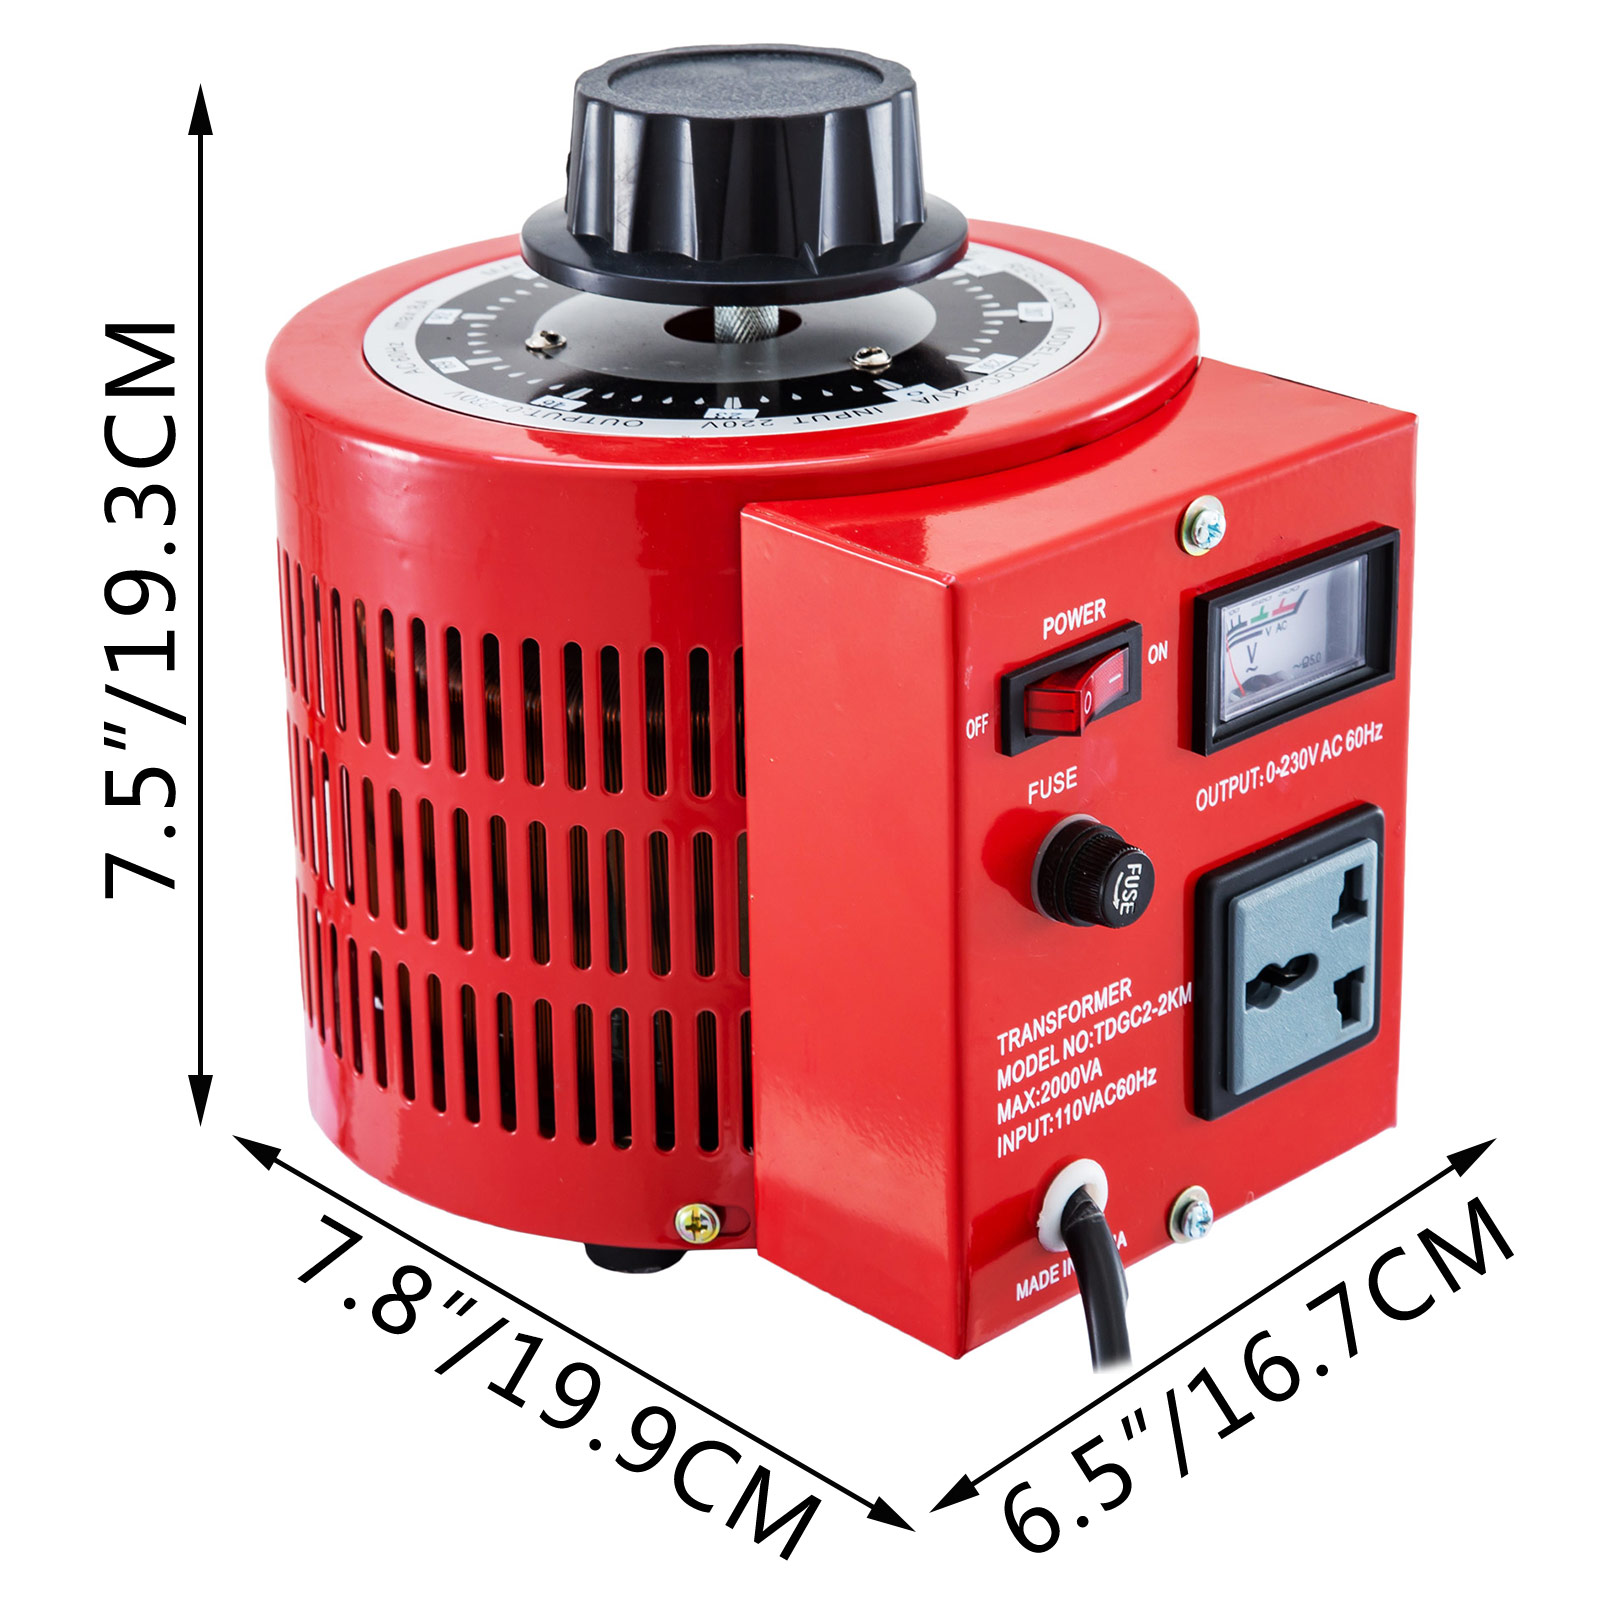 0-5-1-2-3KVA-Variac-Variable-Transformer-0-130V-AC-Voltage-Regulator-5-10-20-30A miniature 80